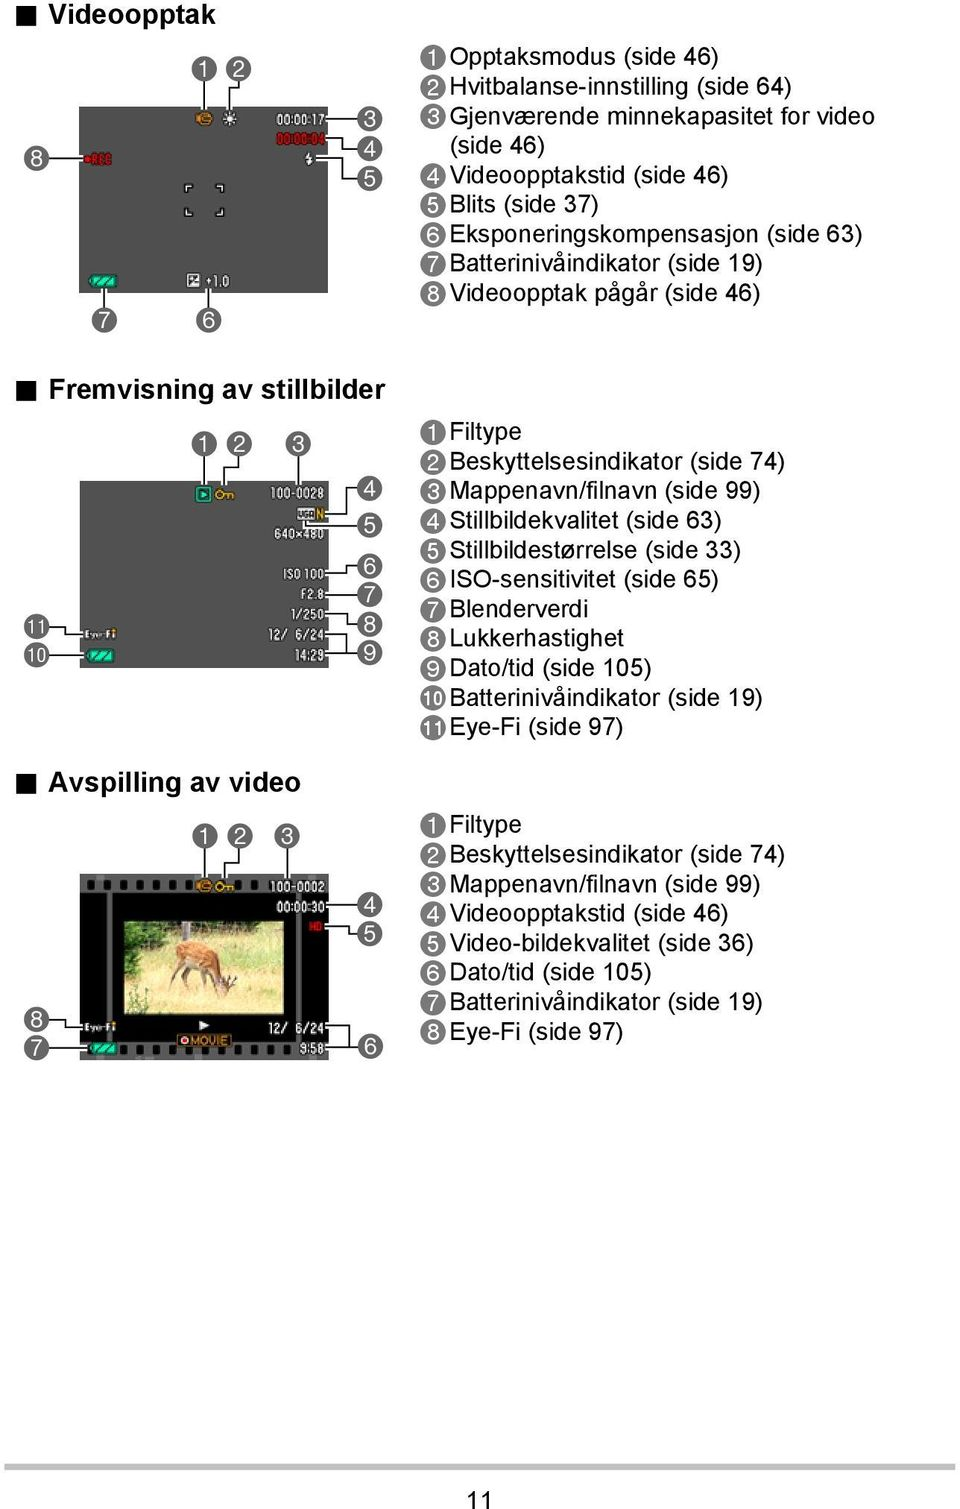 Avspilling av video 8 7 1 2 3 4 5 6 7 8 9 4 5 6 1Filtype 2Beskyttelsesindikator (side 74) 3Mappenavn/filnavn (side 99) 4Stillbildekvalitet (side 63) 5Stillbildestørrelse (side 33) 6ISO-sensitivitet